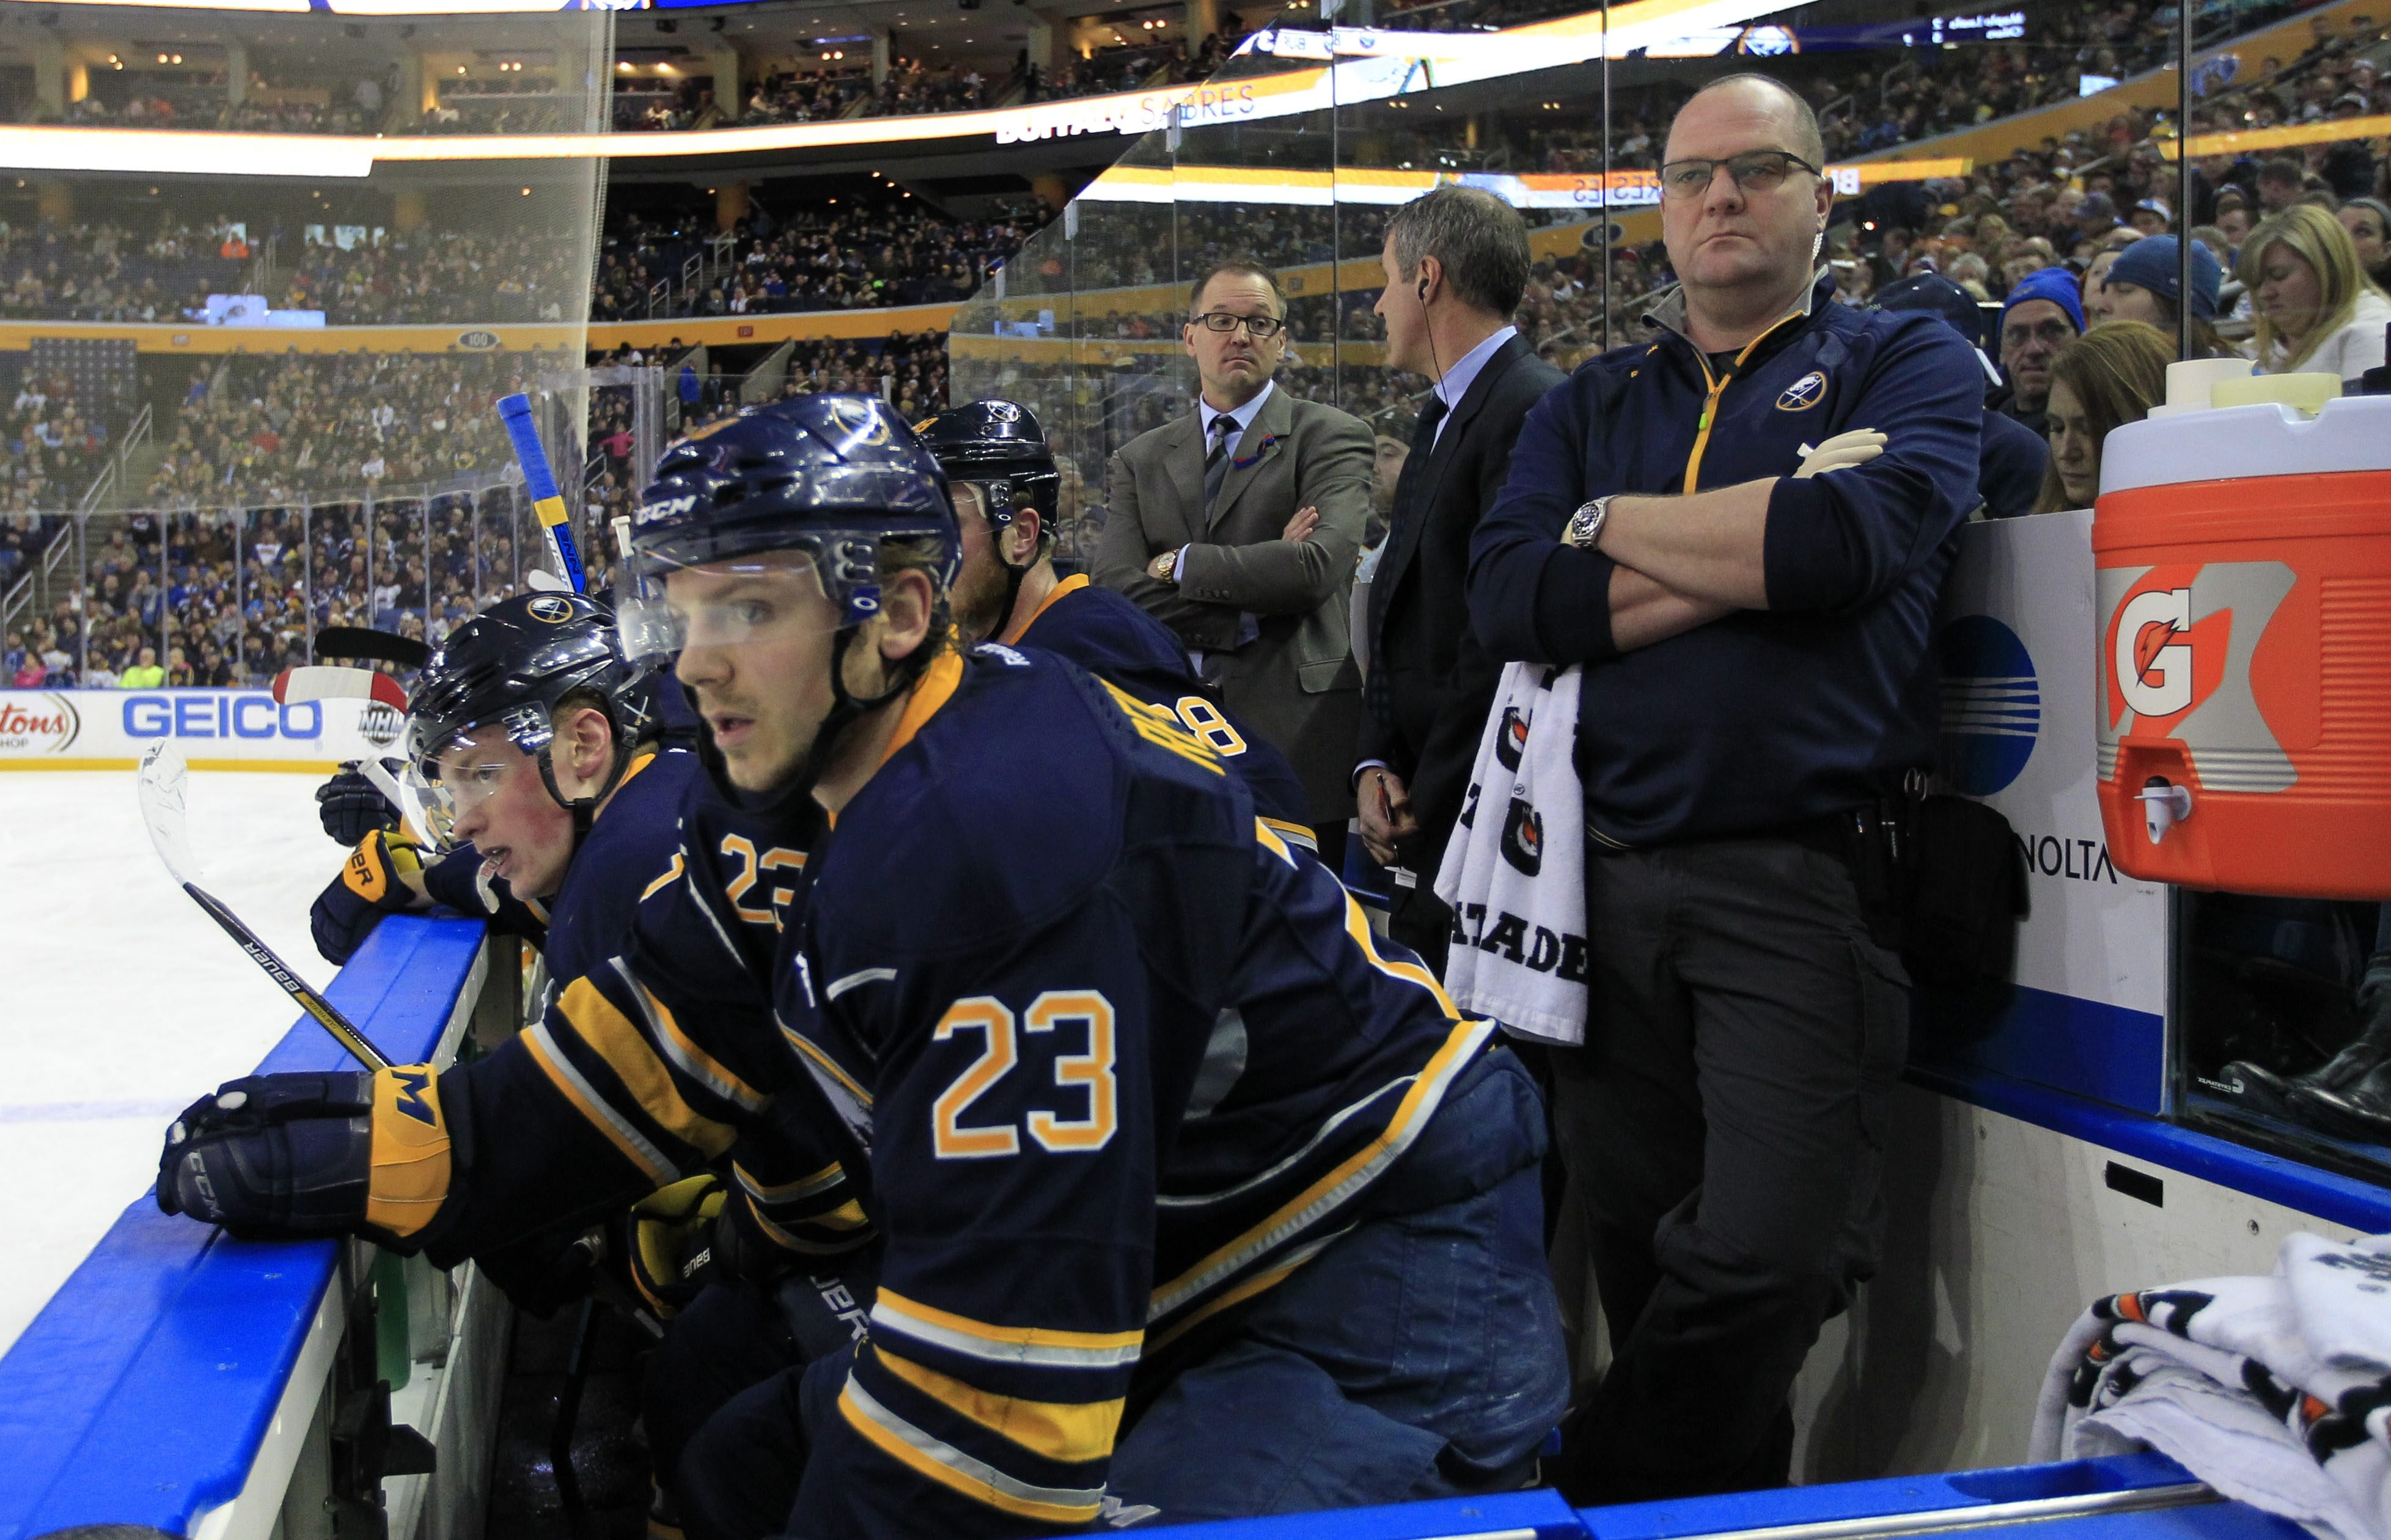 Dan Bylsma says the Sabres are at the time of the season when they should feel the need to win games.